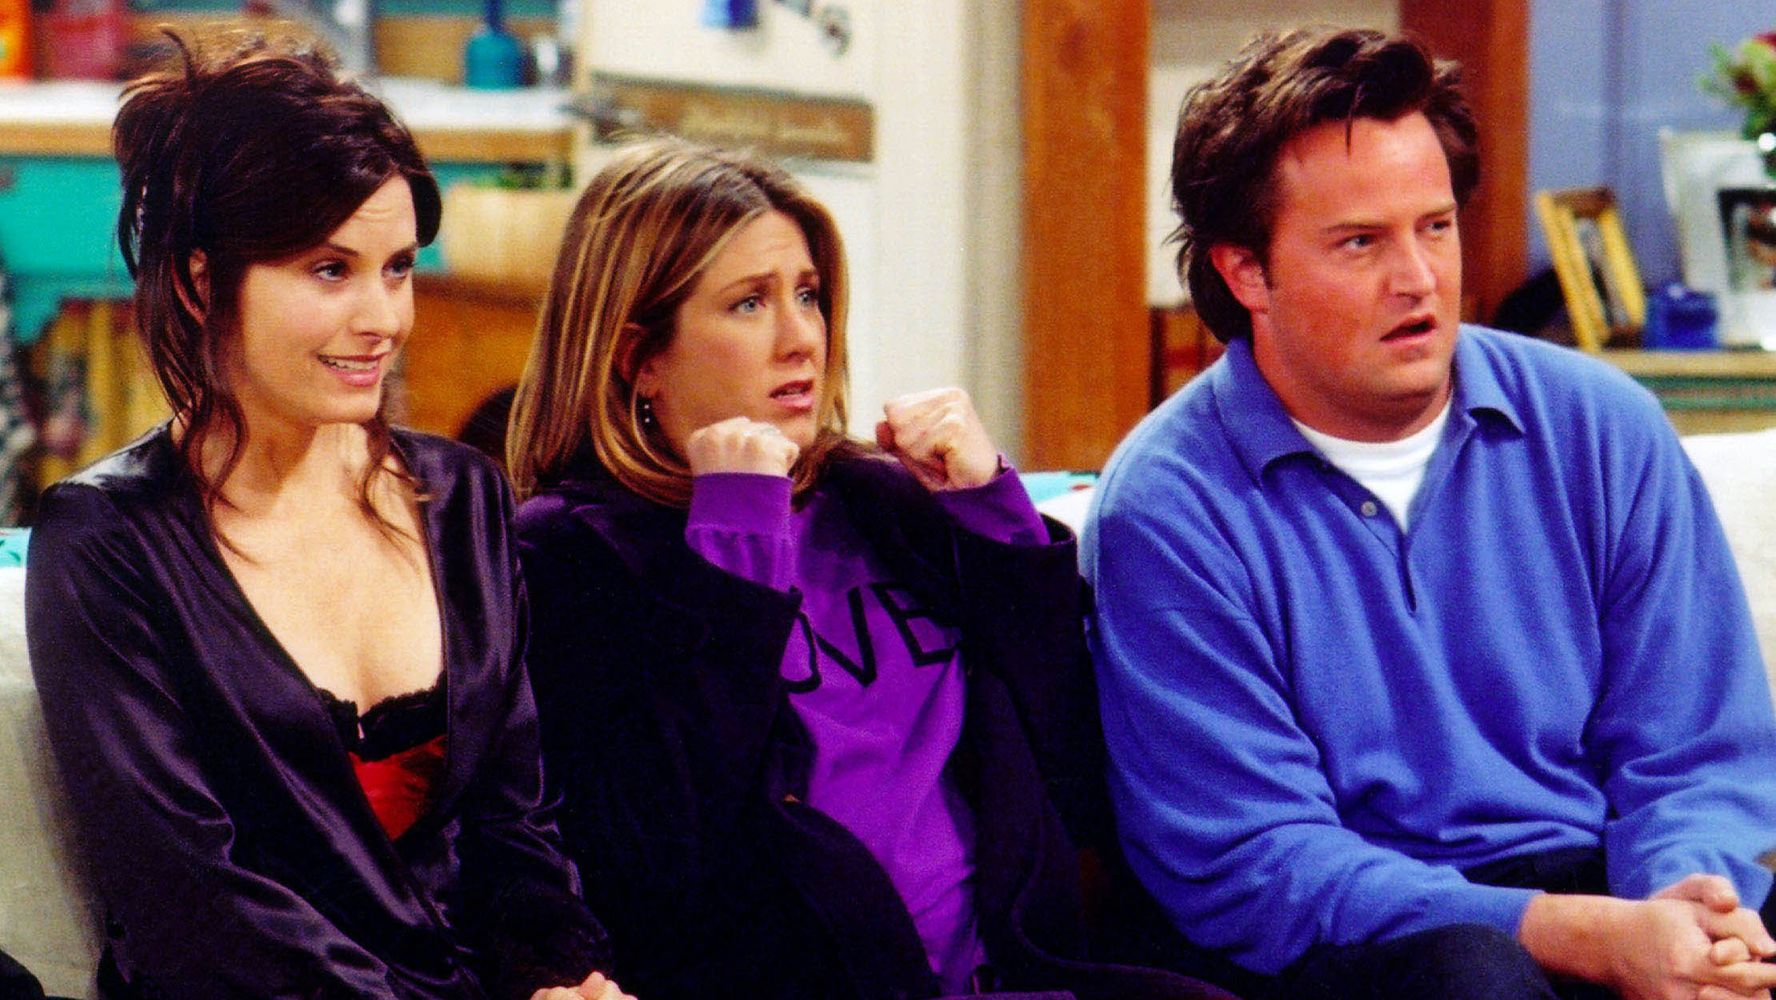 7 Netflix Shows To Watch If You Like 'Friends' | HuffPost